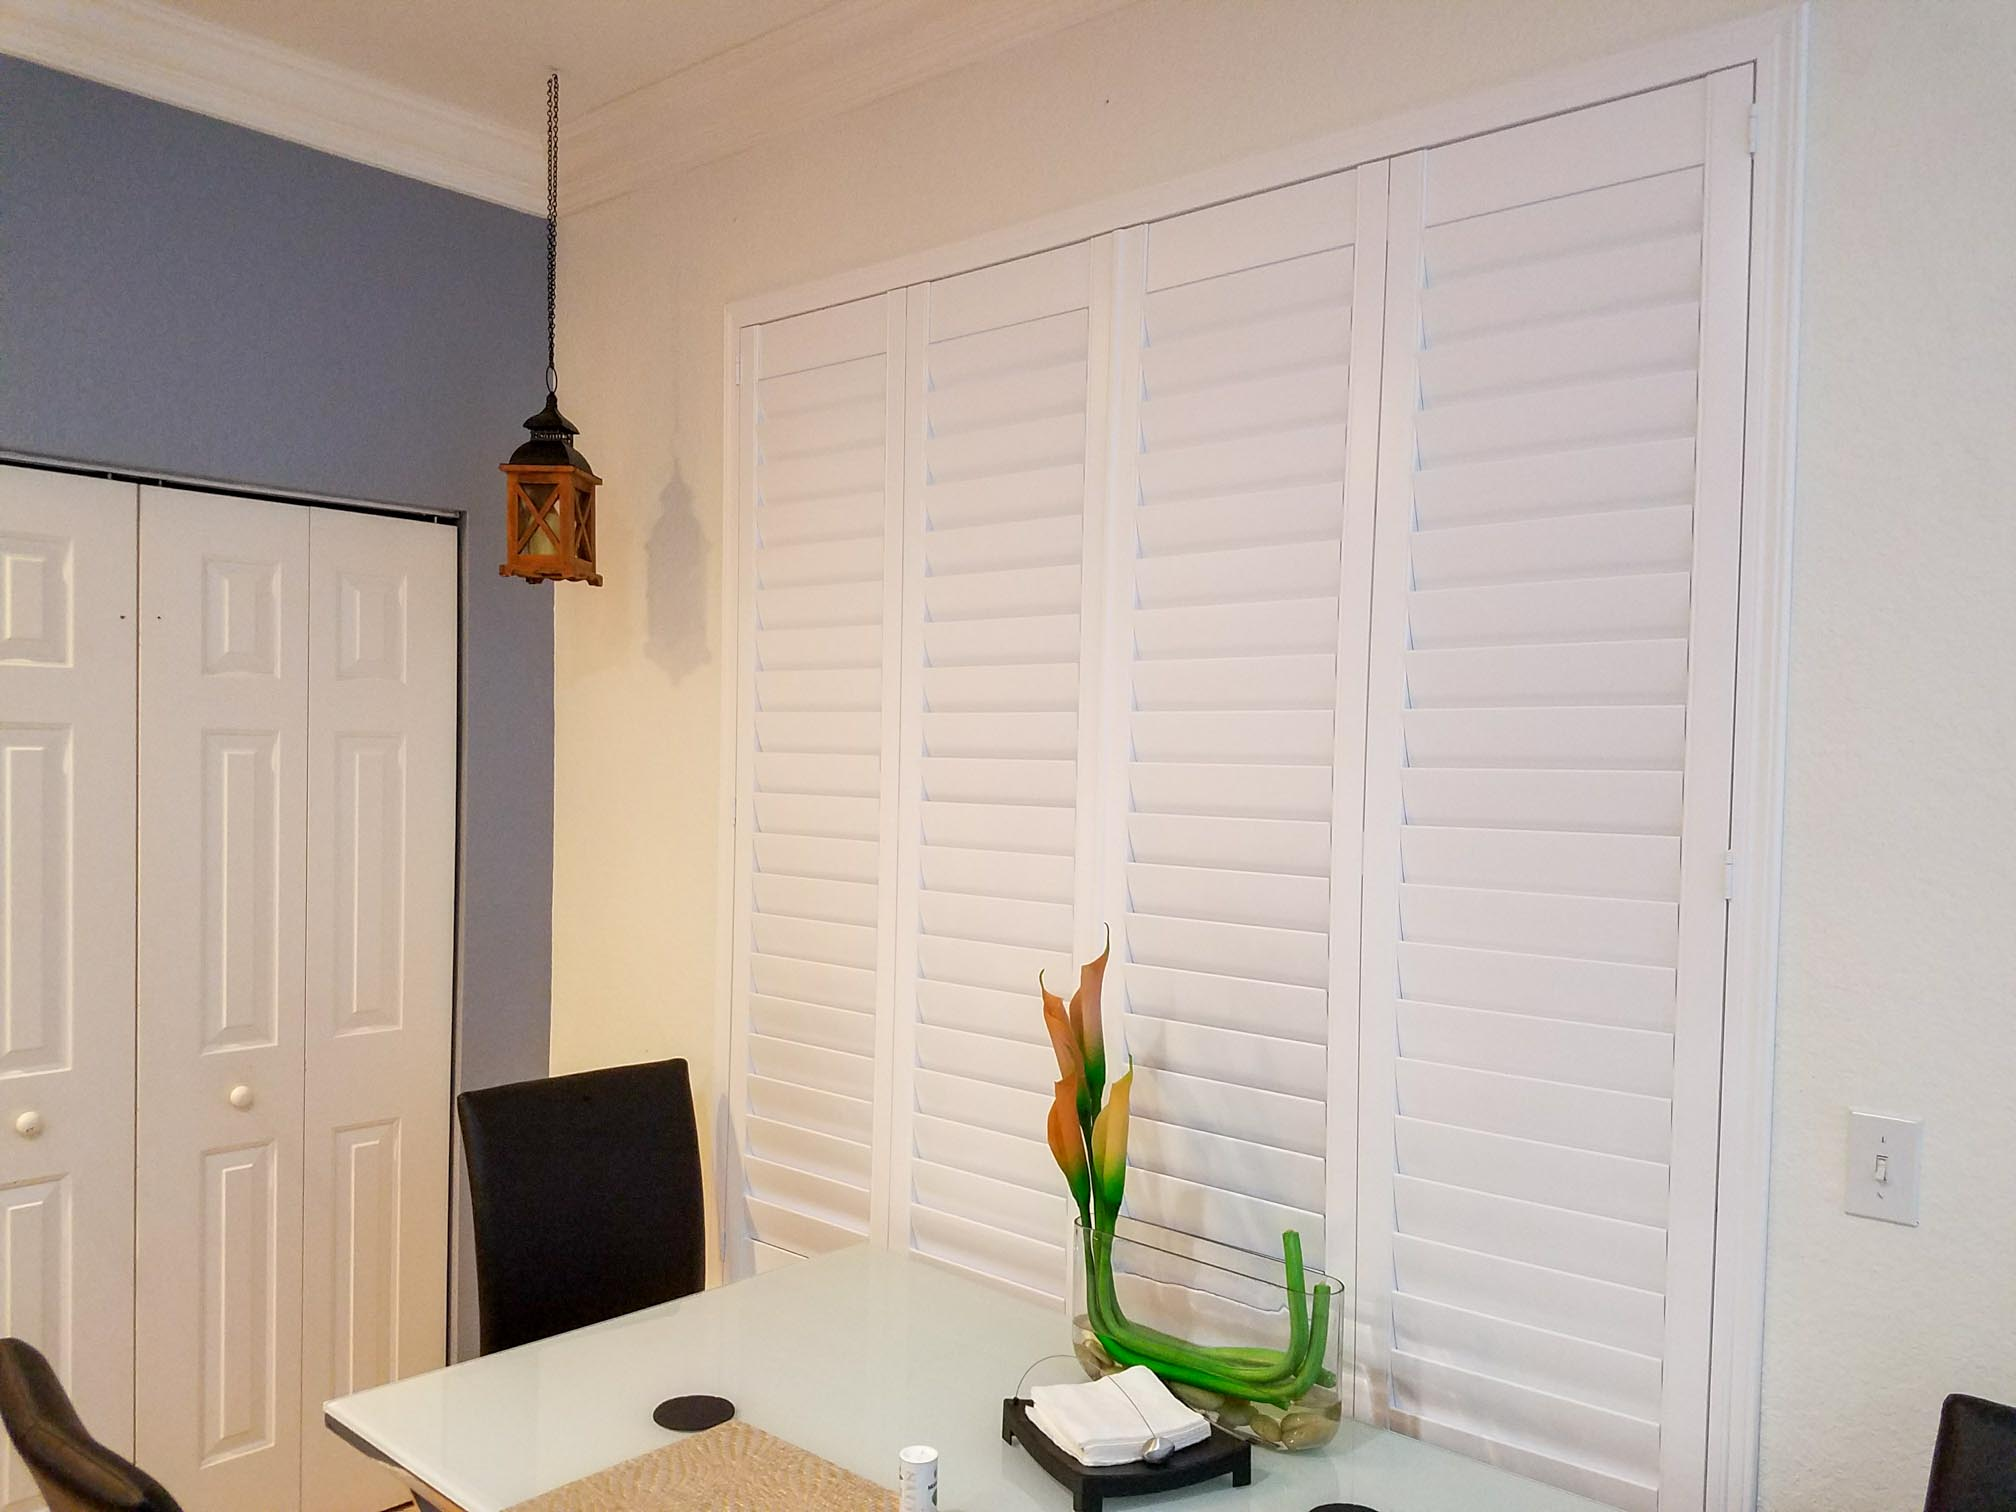 plantation shutters gallery PLANTATION SHUTTERS GALLERY 20161006 142344